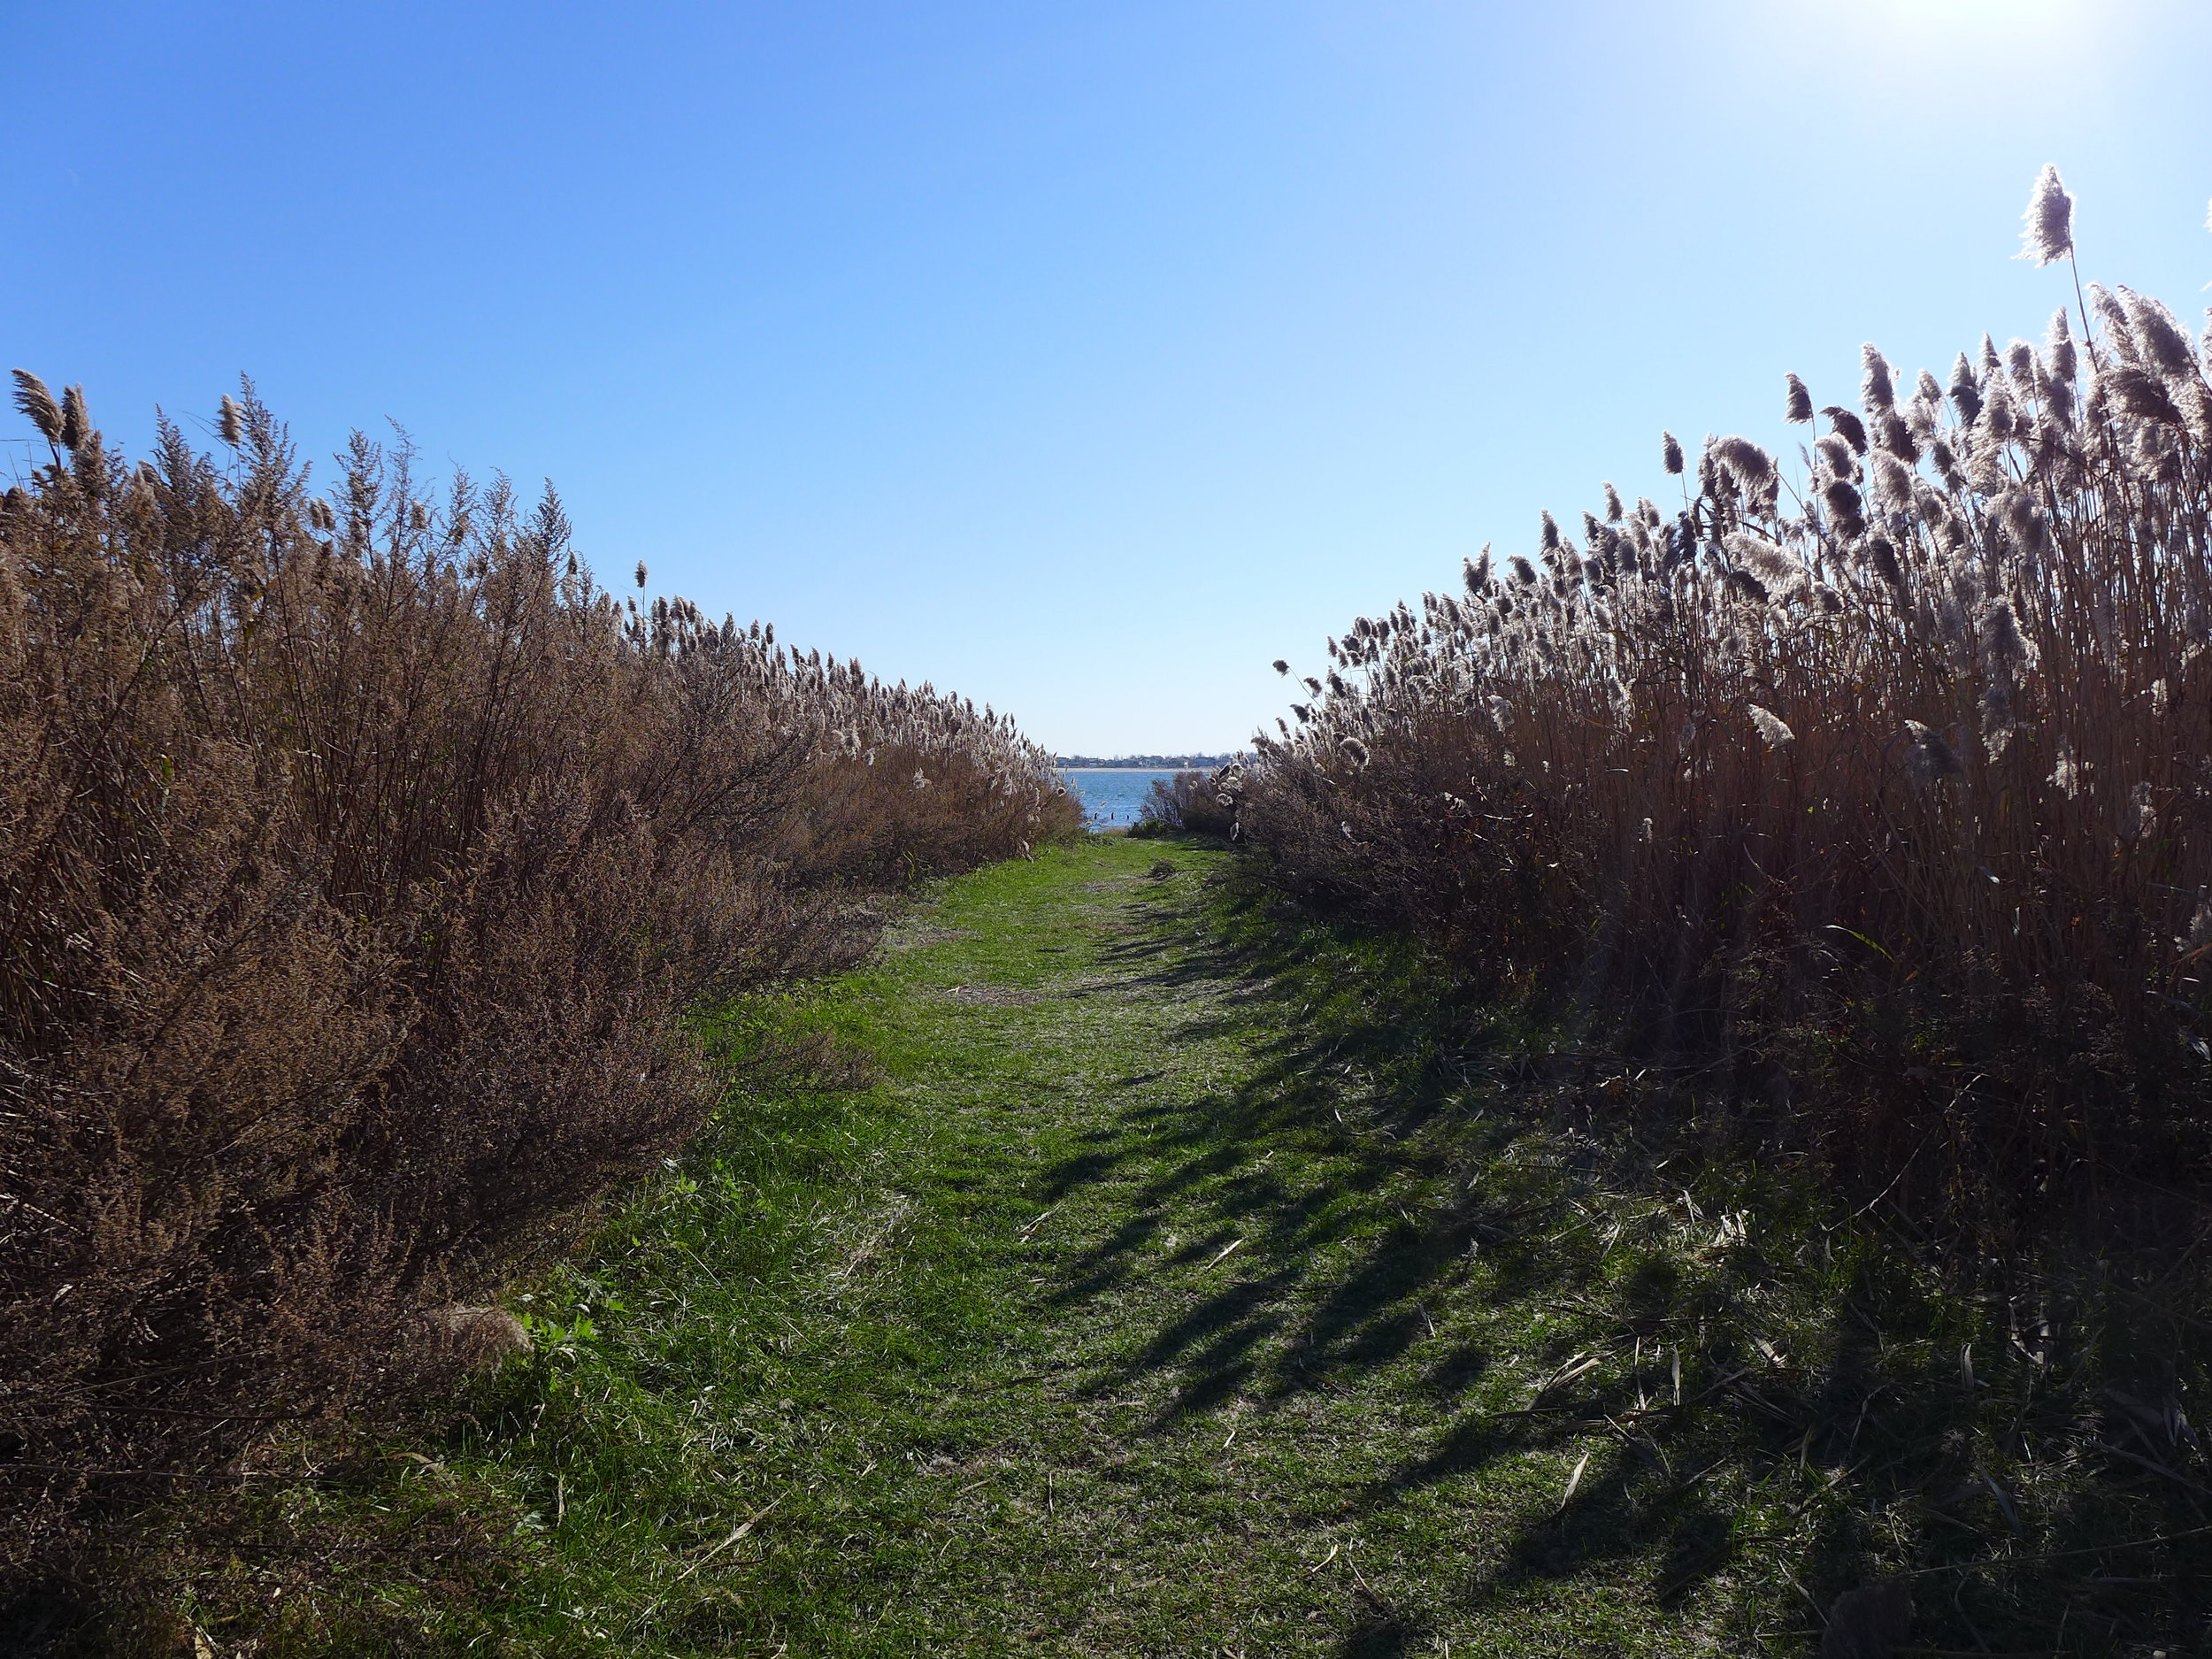 Jamaica Bay through the Cattails